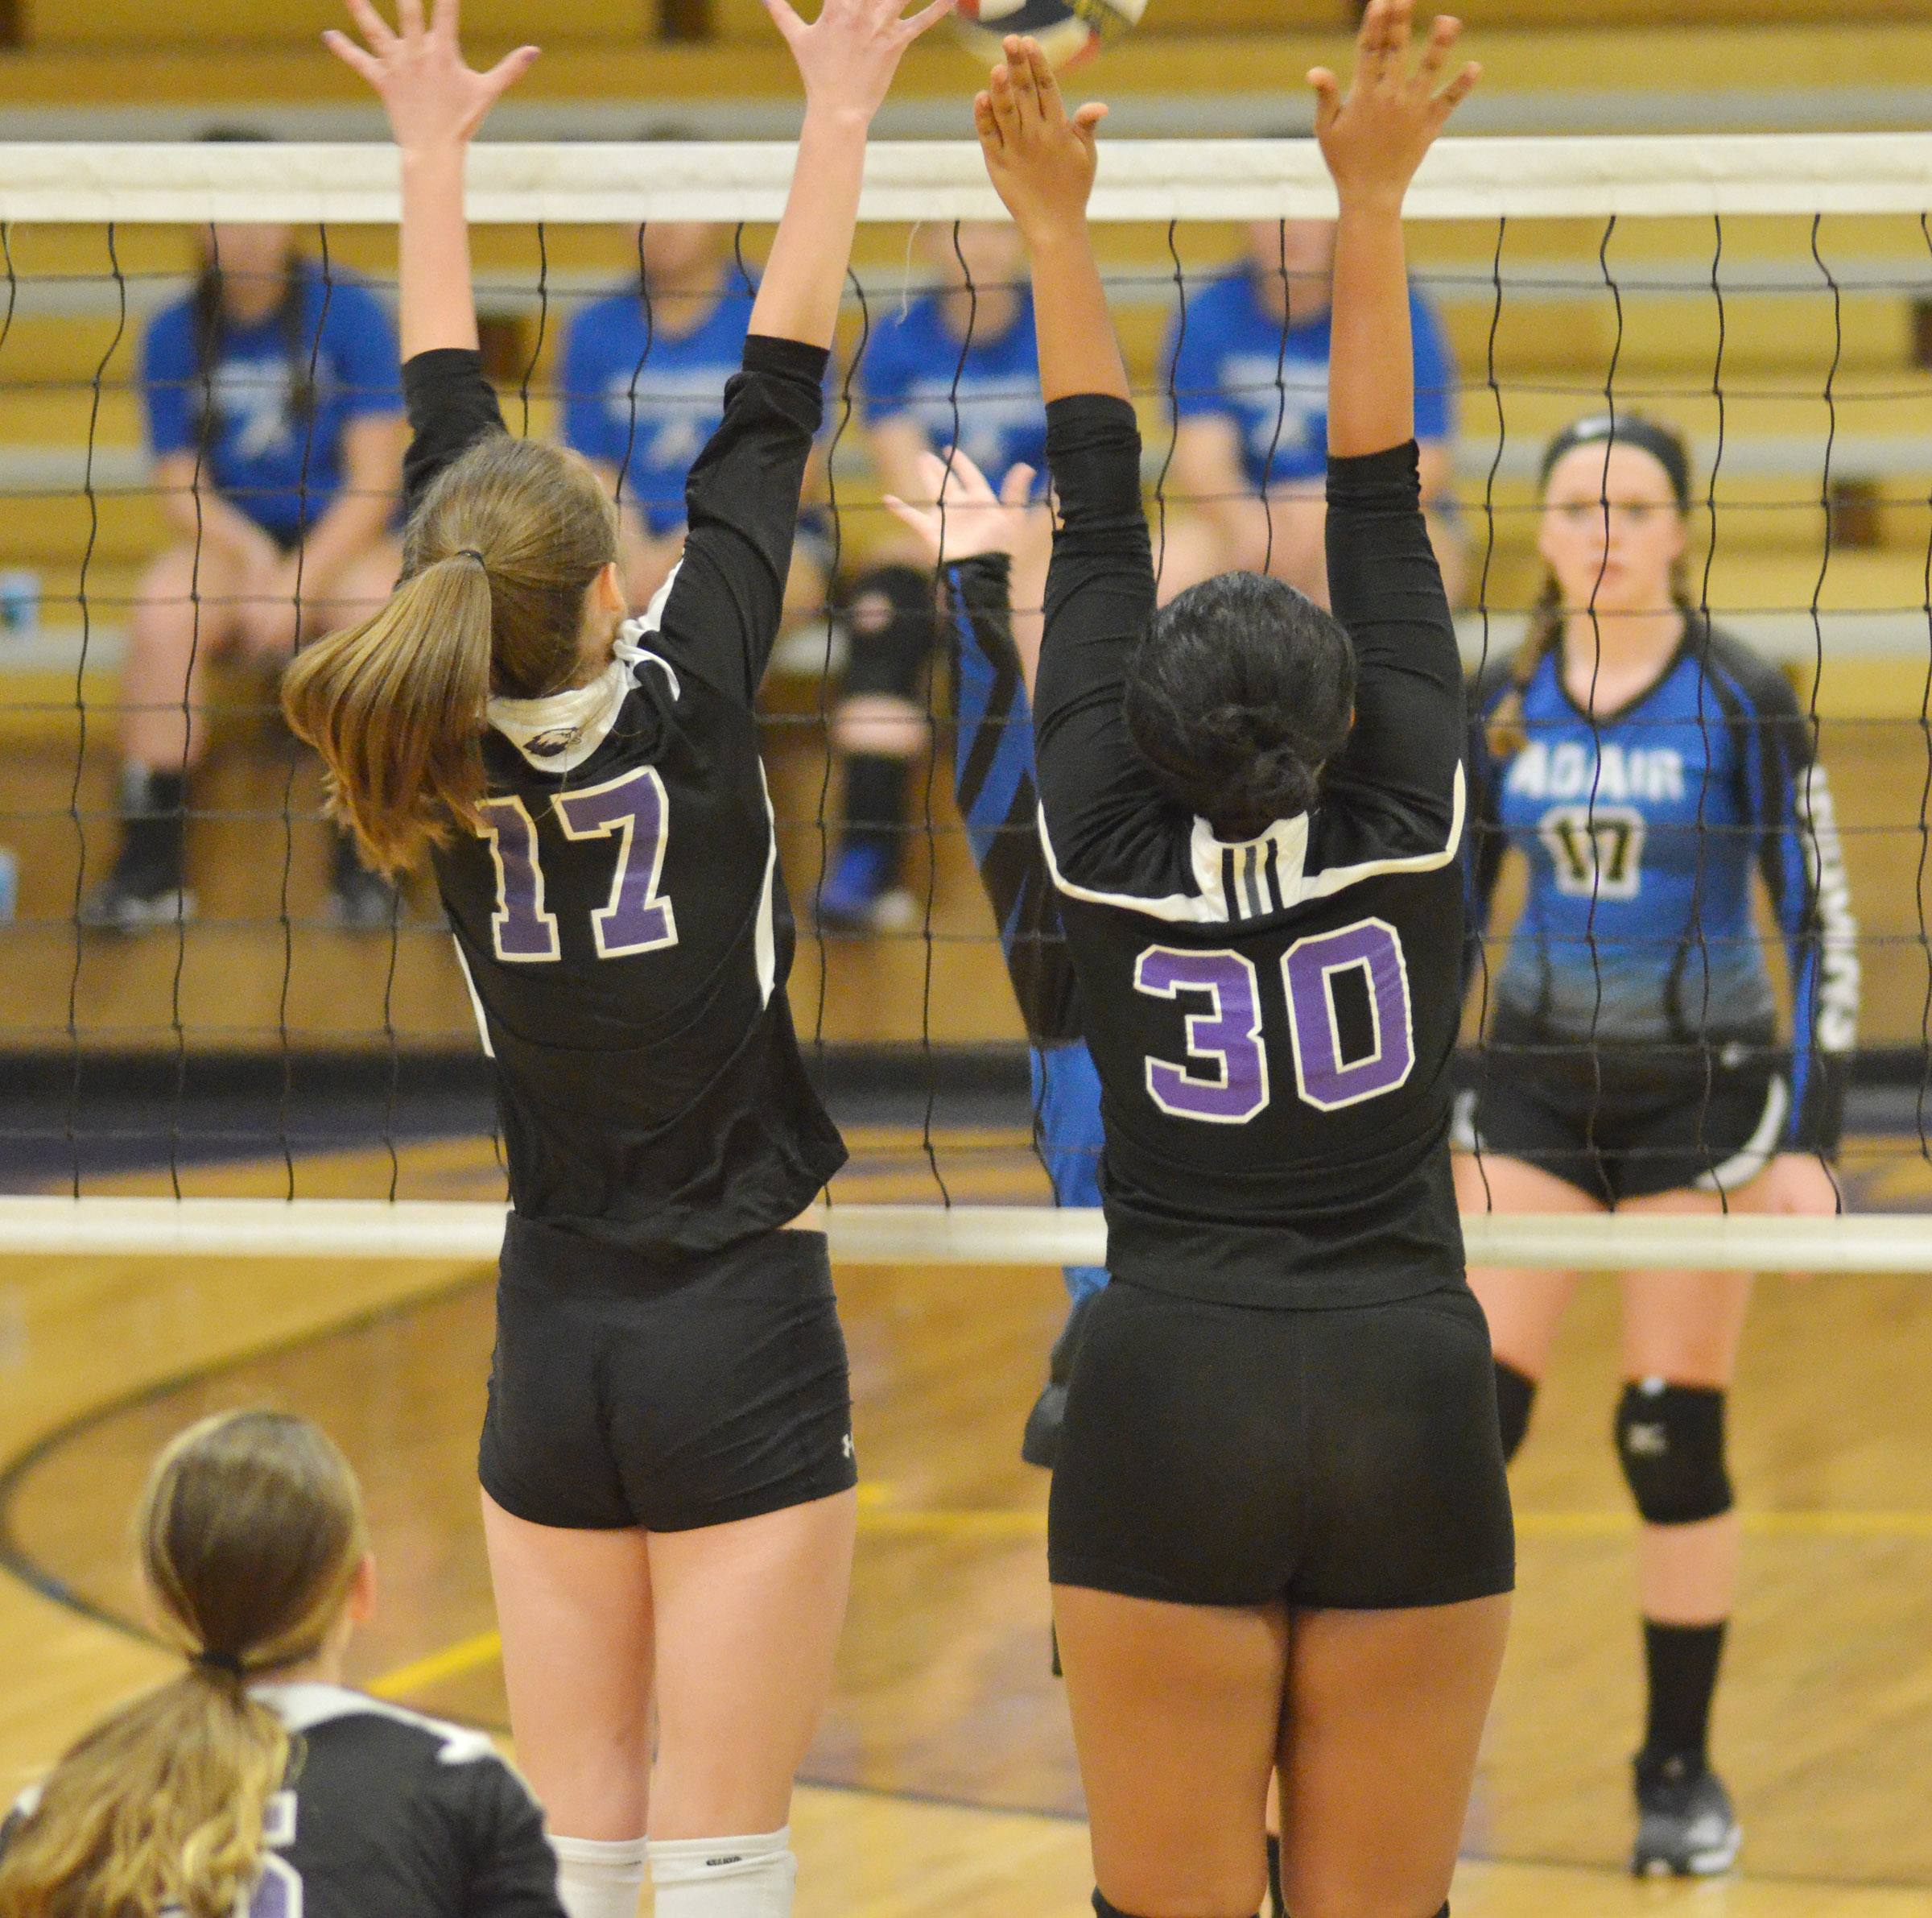 CHS junior Samantha Mason, at left, and senior Amanda Miles jump to block a shot.